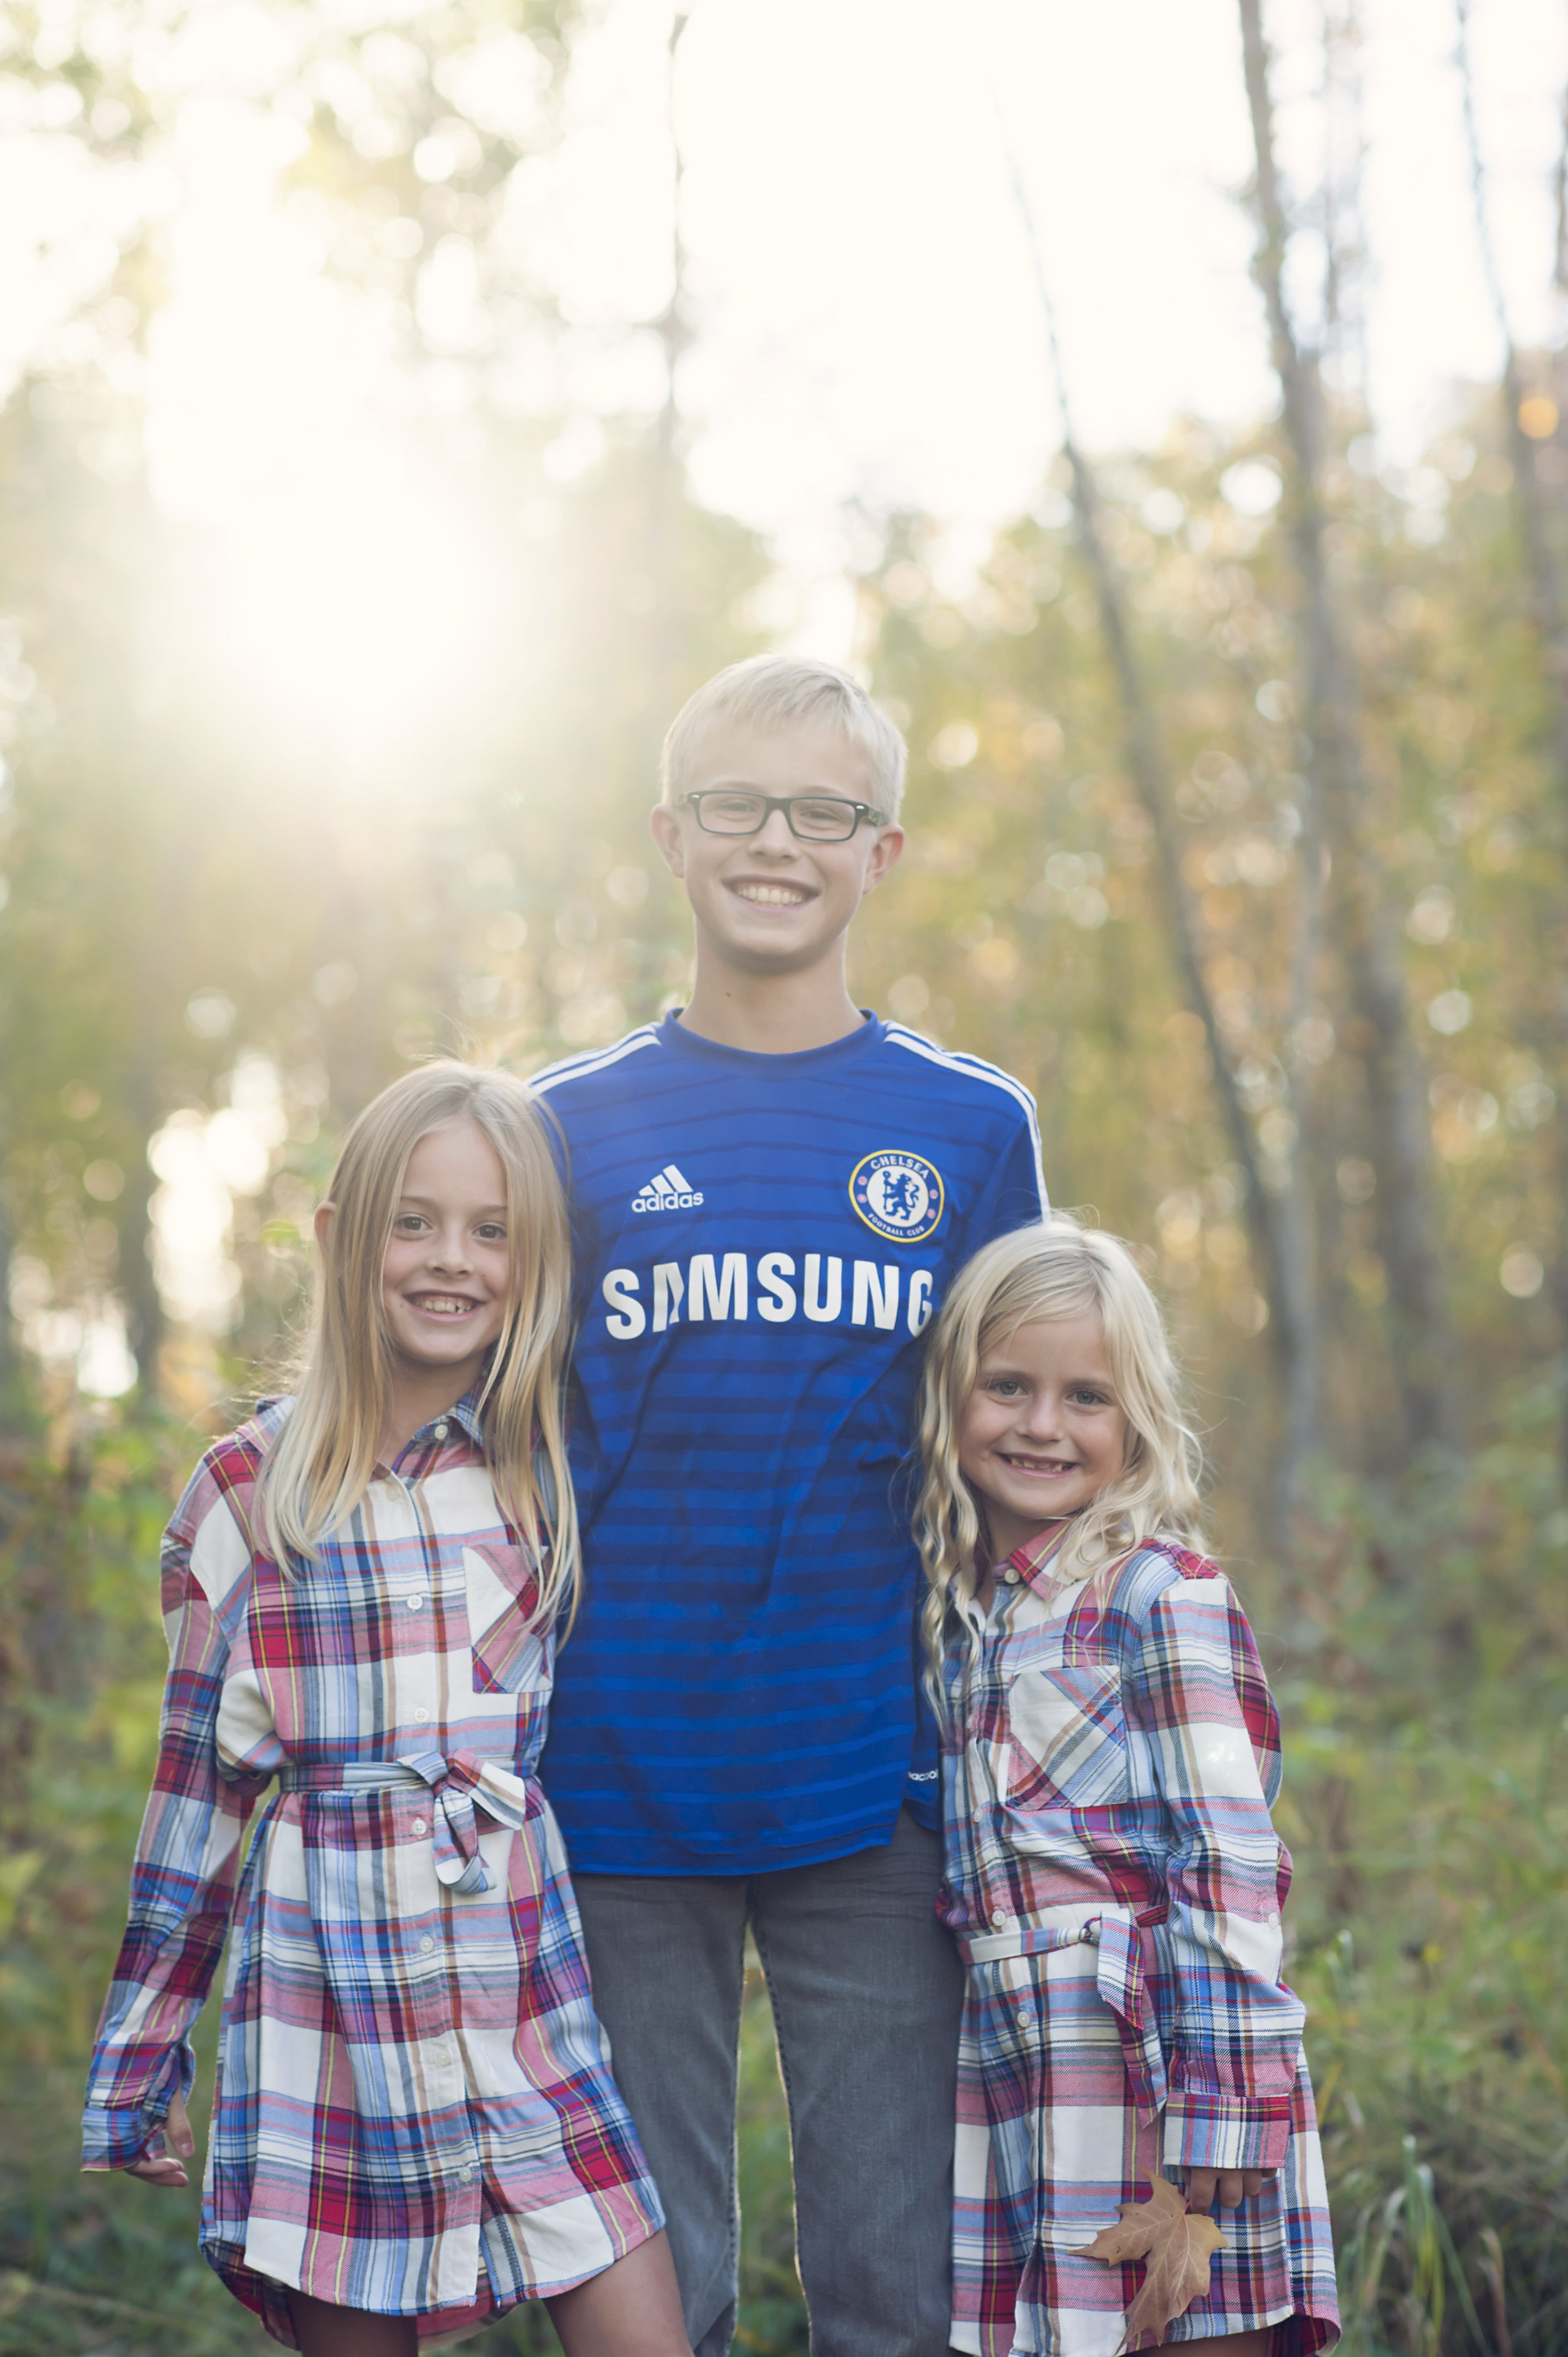 - We have three kiddos Liam (13), Raine (10) and Haven-Kate (who I always referred to as the baby but we have no babies anymore and is eight!) Being a mother is amazing, I love it all, even though some days I feel overwhelmed and cannot begin to get to all the things I would ideally like to get to.We are lifelong learners, which is my preferred way of referring to our version of homeschooling. We all love to learn and our main goals for homeschooling are family connection and having kids who know how to discover and pursue their own unique passions and goals.